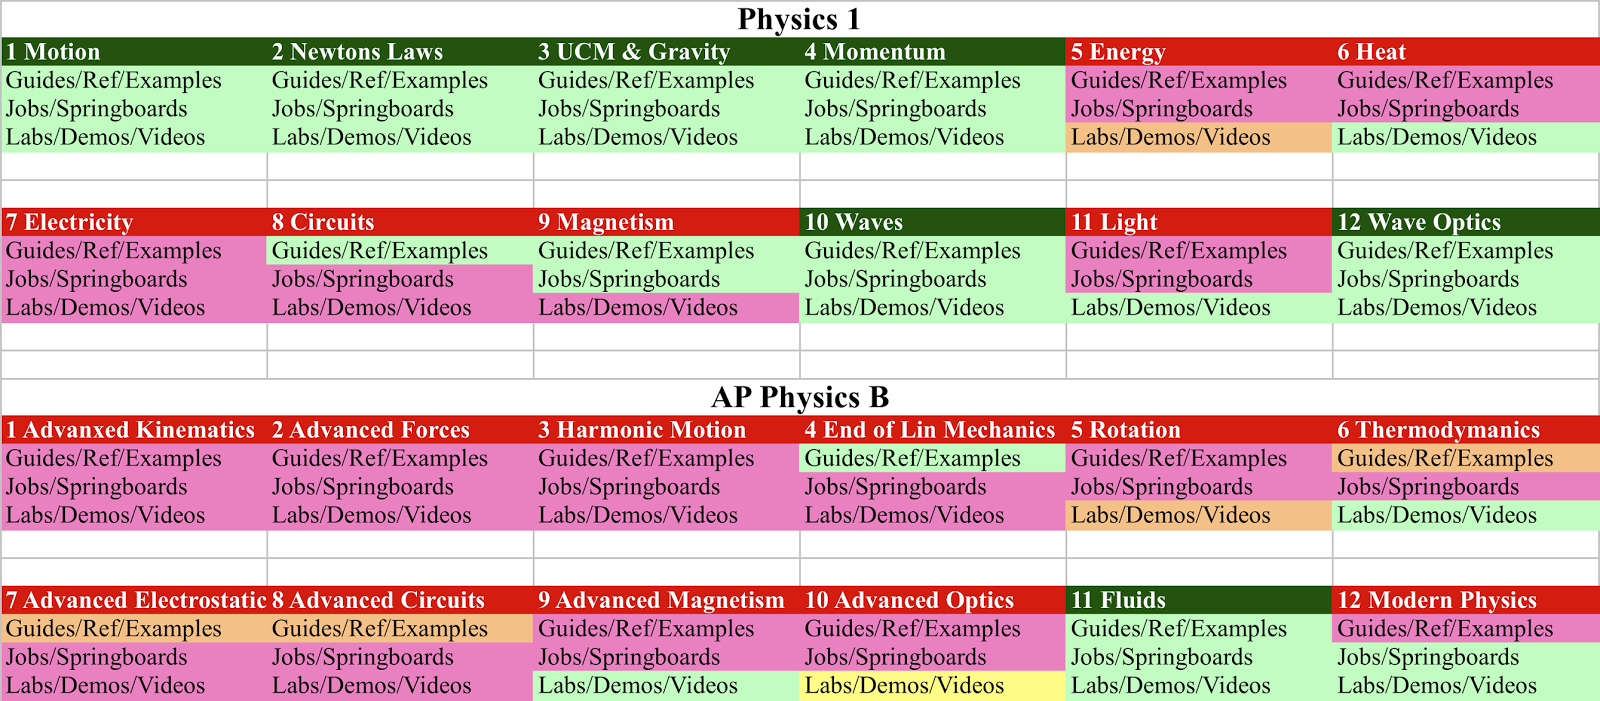 The Blog Of Phyz 2013 Doc Phet Dc Circuit Lab Parallel Bulbs In Physics 23 36 Folders Are Converted Nearly 2 3rds Ap Only Eight Less Than 1 4 Done Completed Shown Green